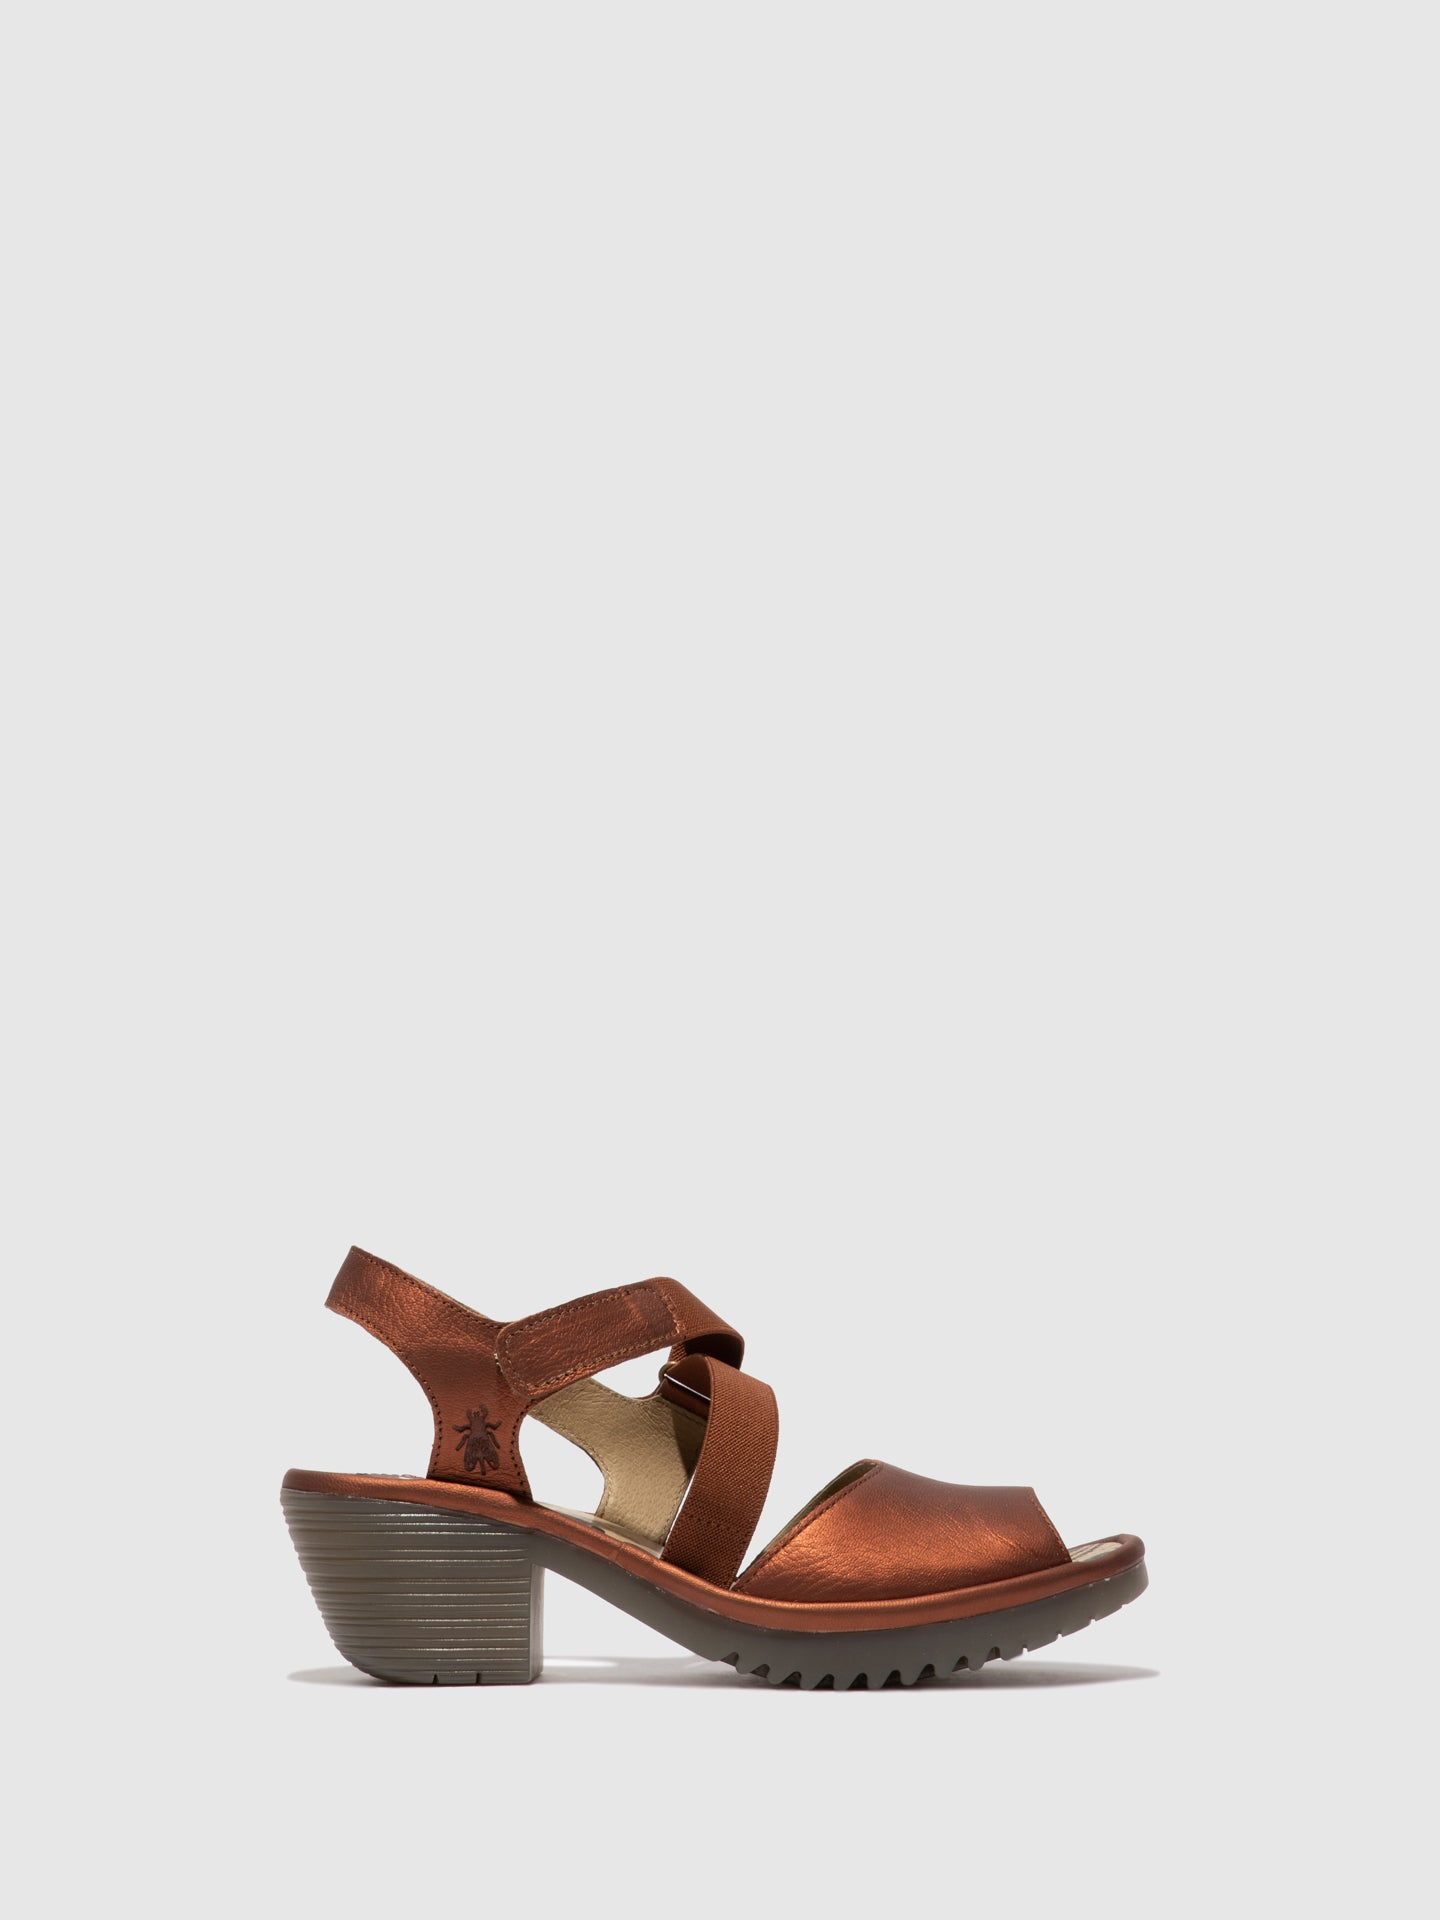 Fly London Velcro Sandals WUNI135FLY COPPER